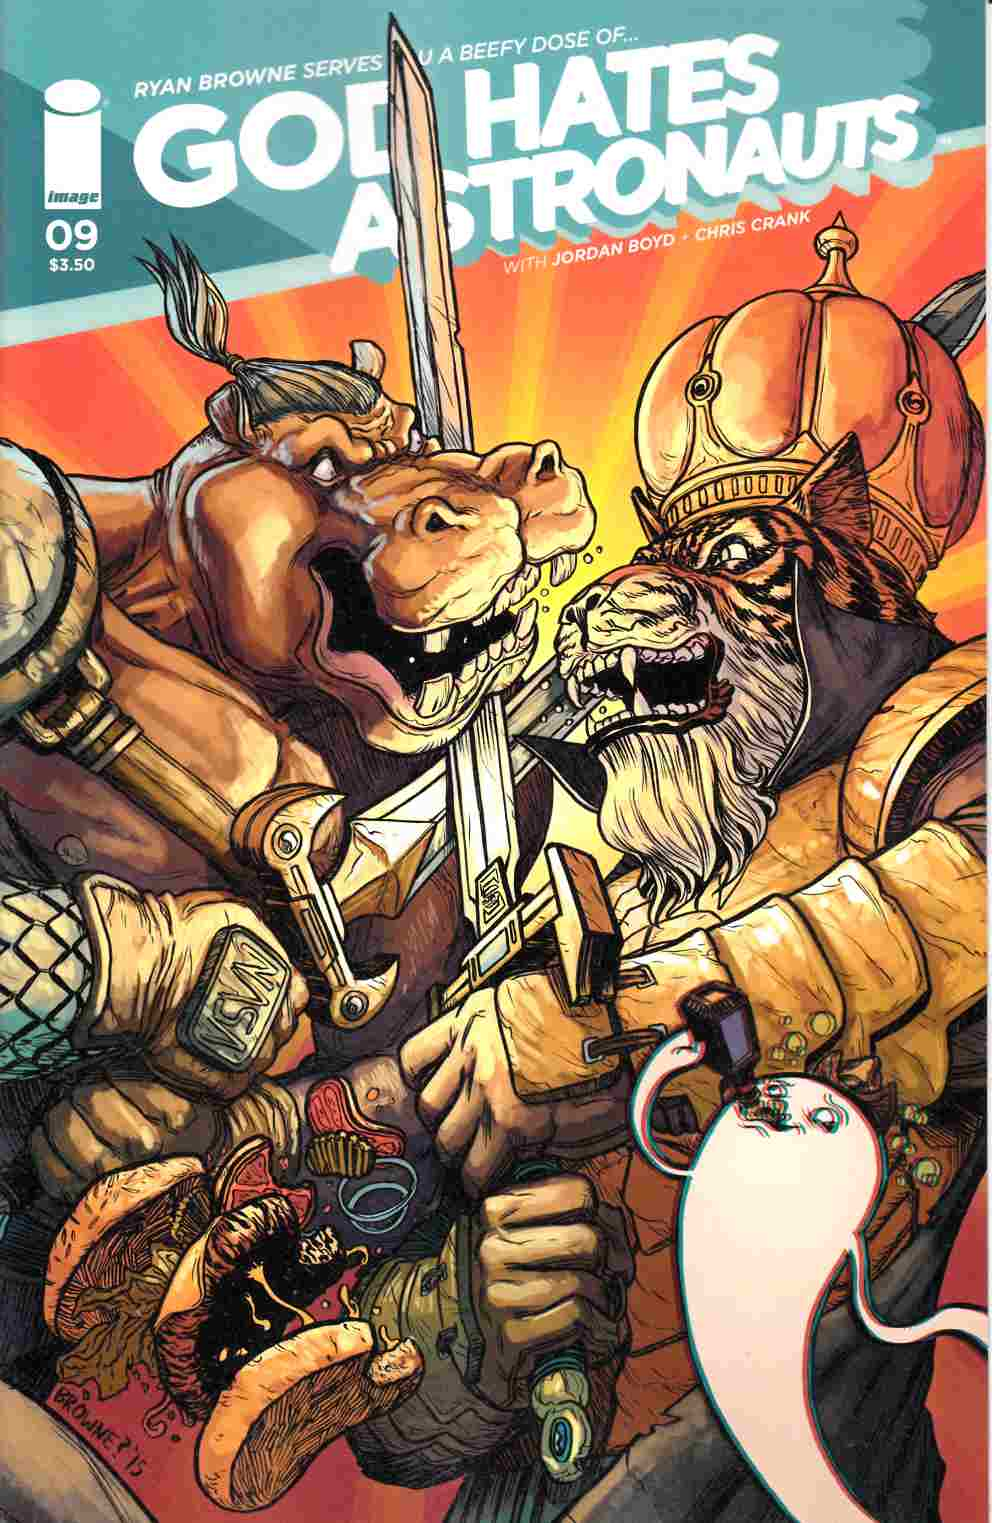 God Hates Astronauts #9 Cover A- Browne [Image Comic] THUMBNAIL